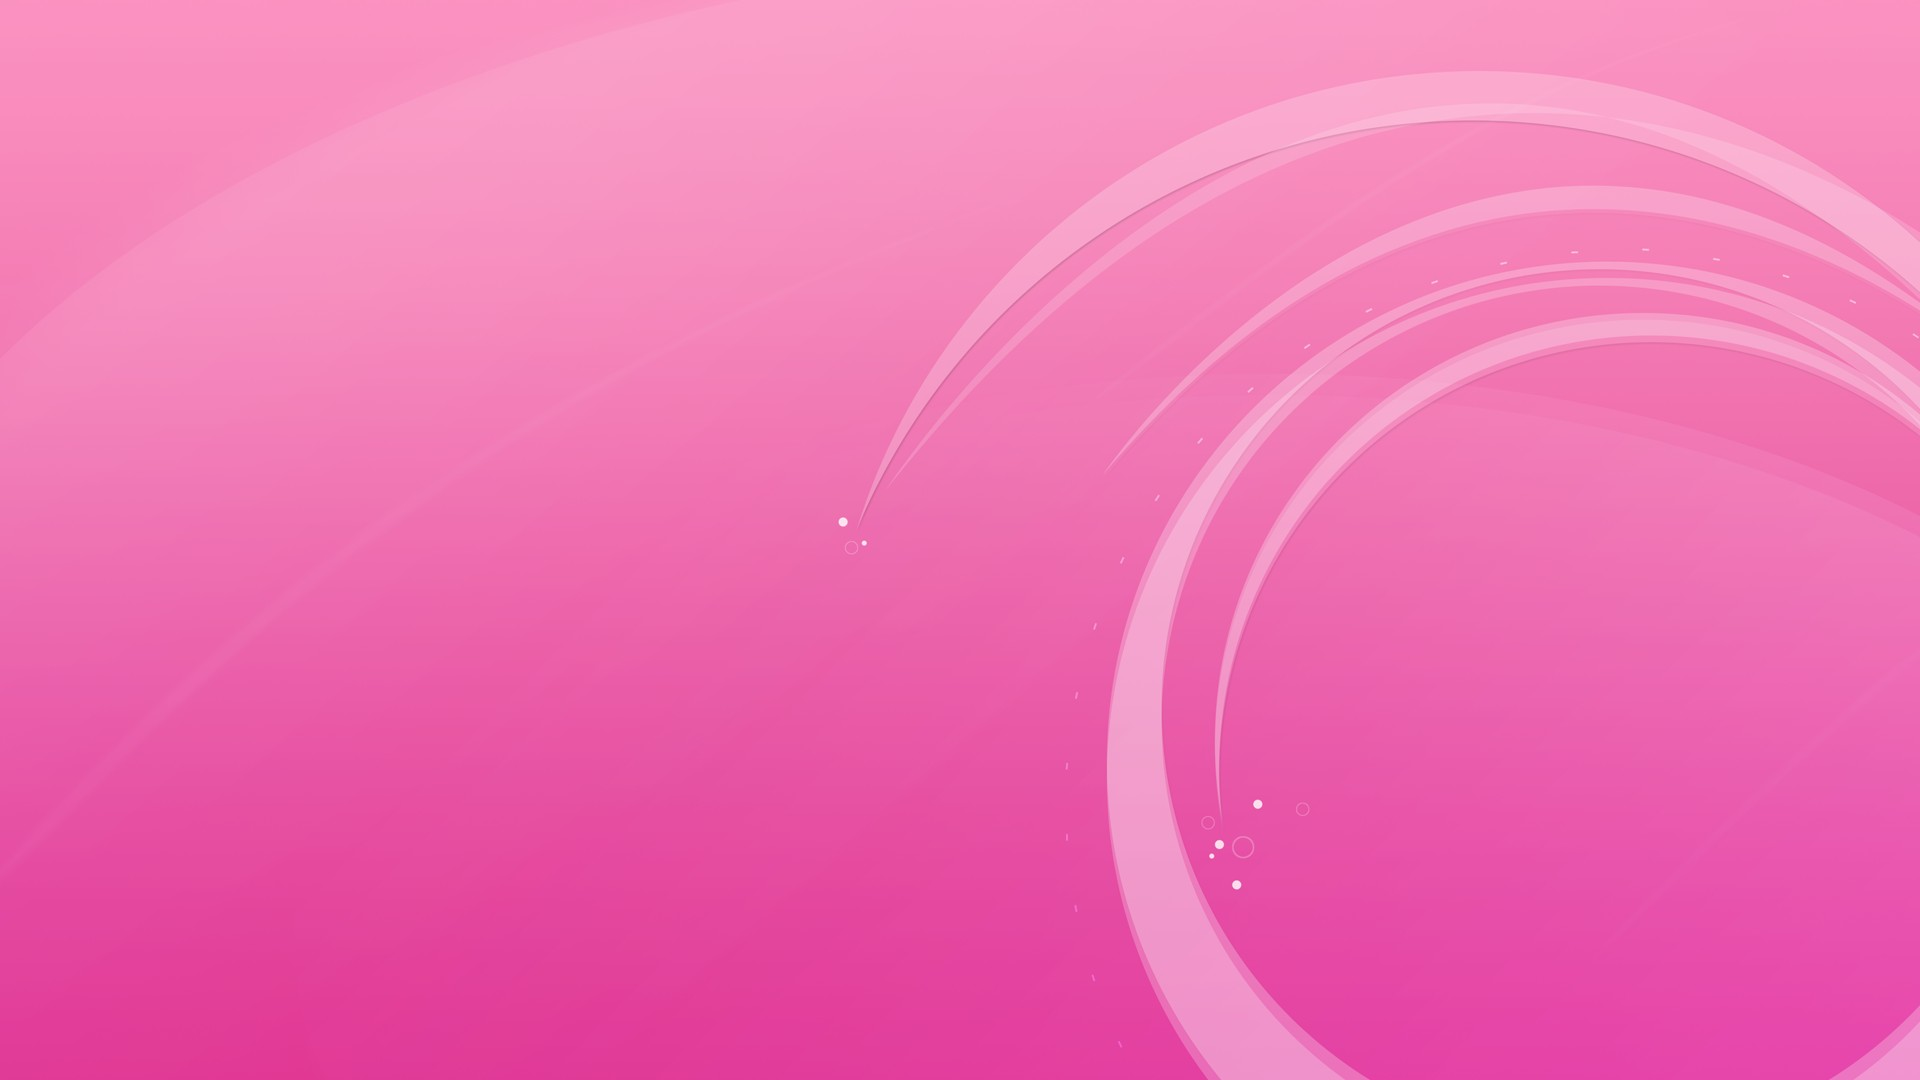 Pink Wallpaper ·① Download Free Amazing Full HD Wallpapers